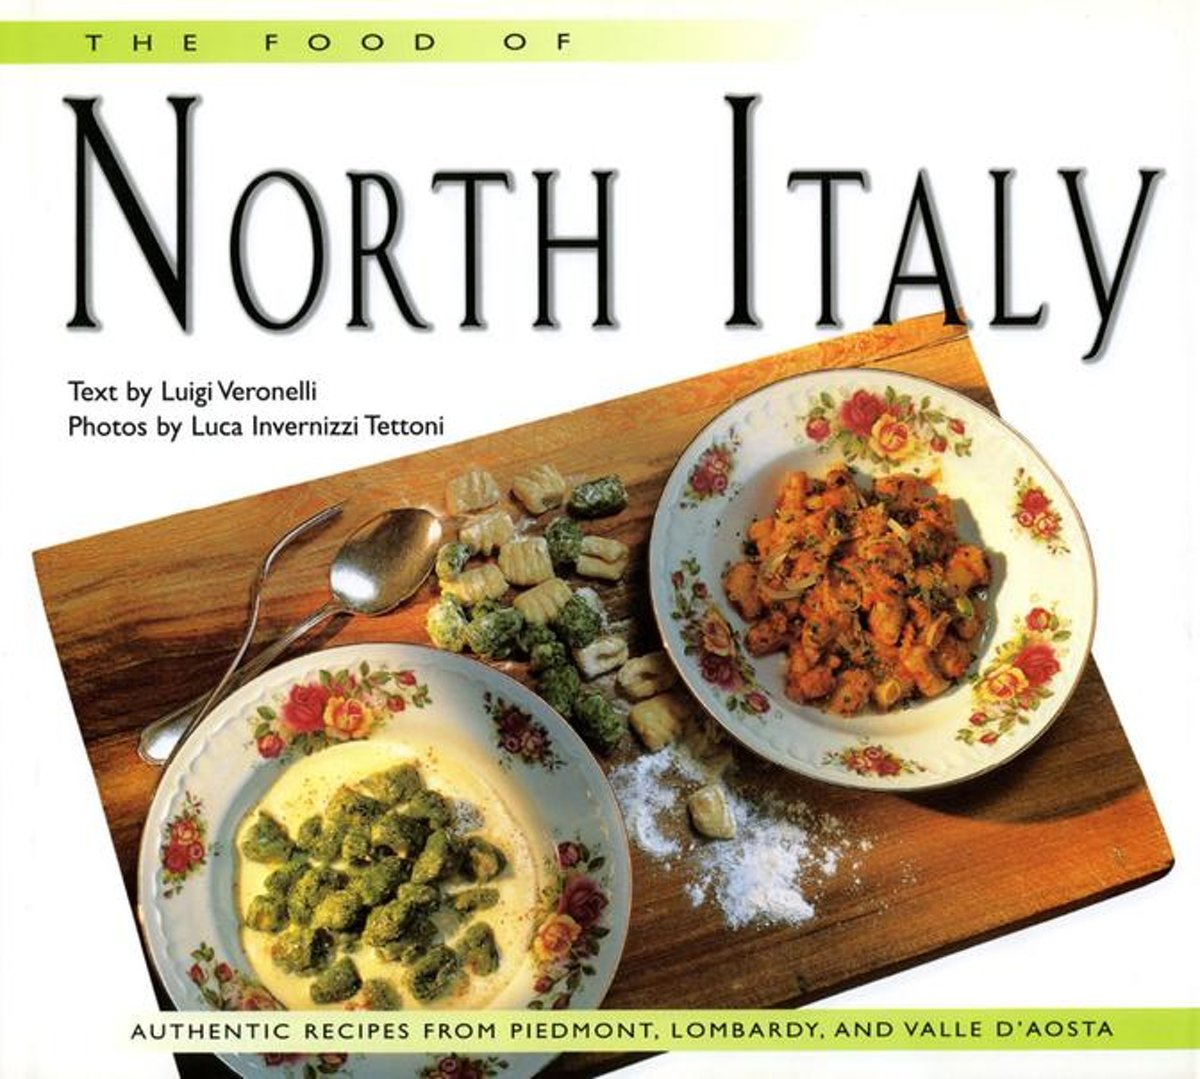 The Food of North Italy